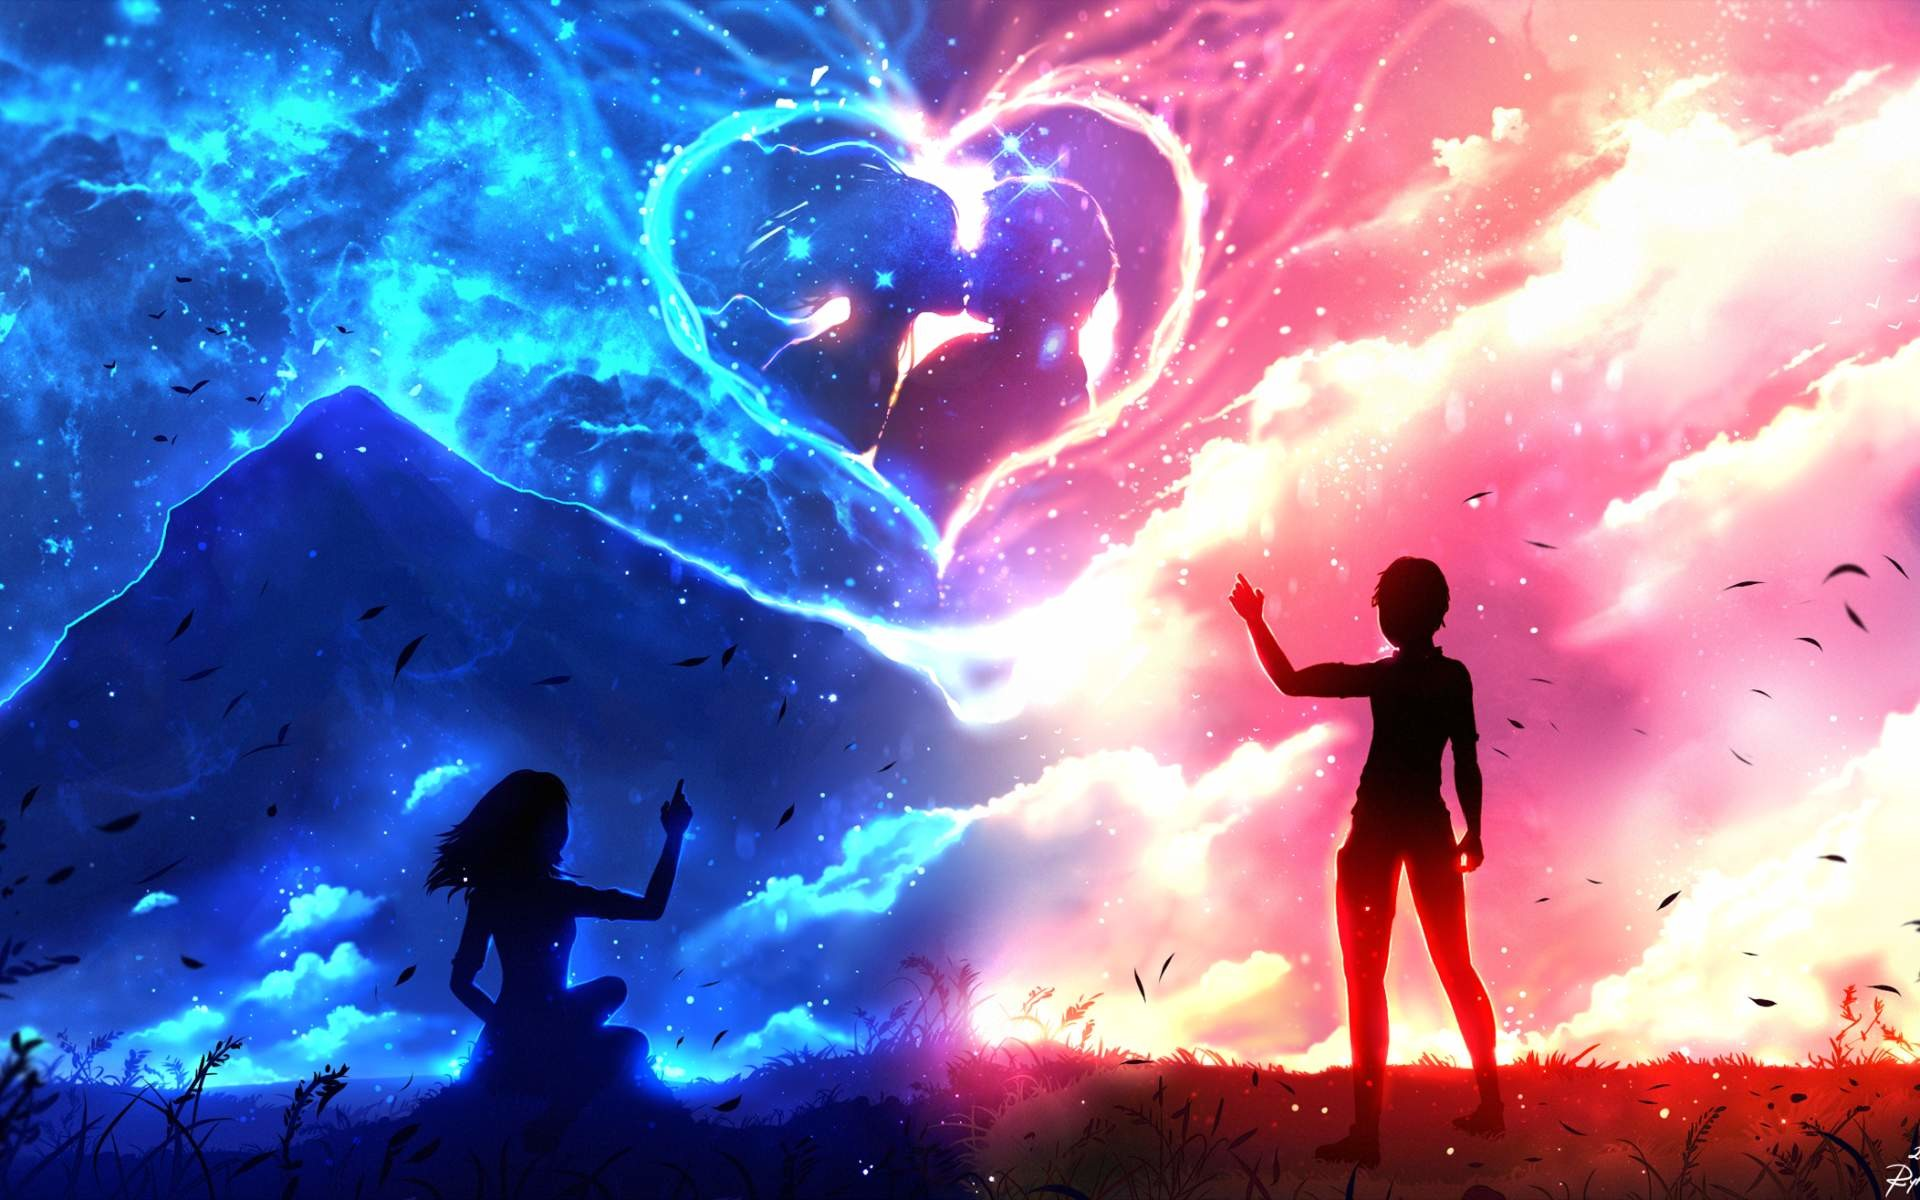 10 Top Cute Love Heart Wallpapers For Mobile Full Hd 1920: Anime Love Wallpaper (78+ Images